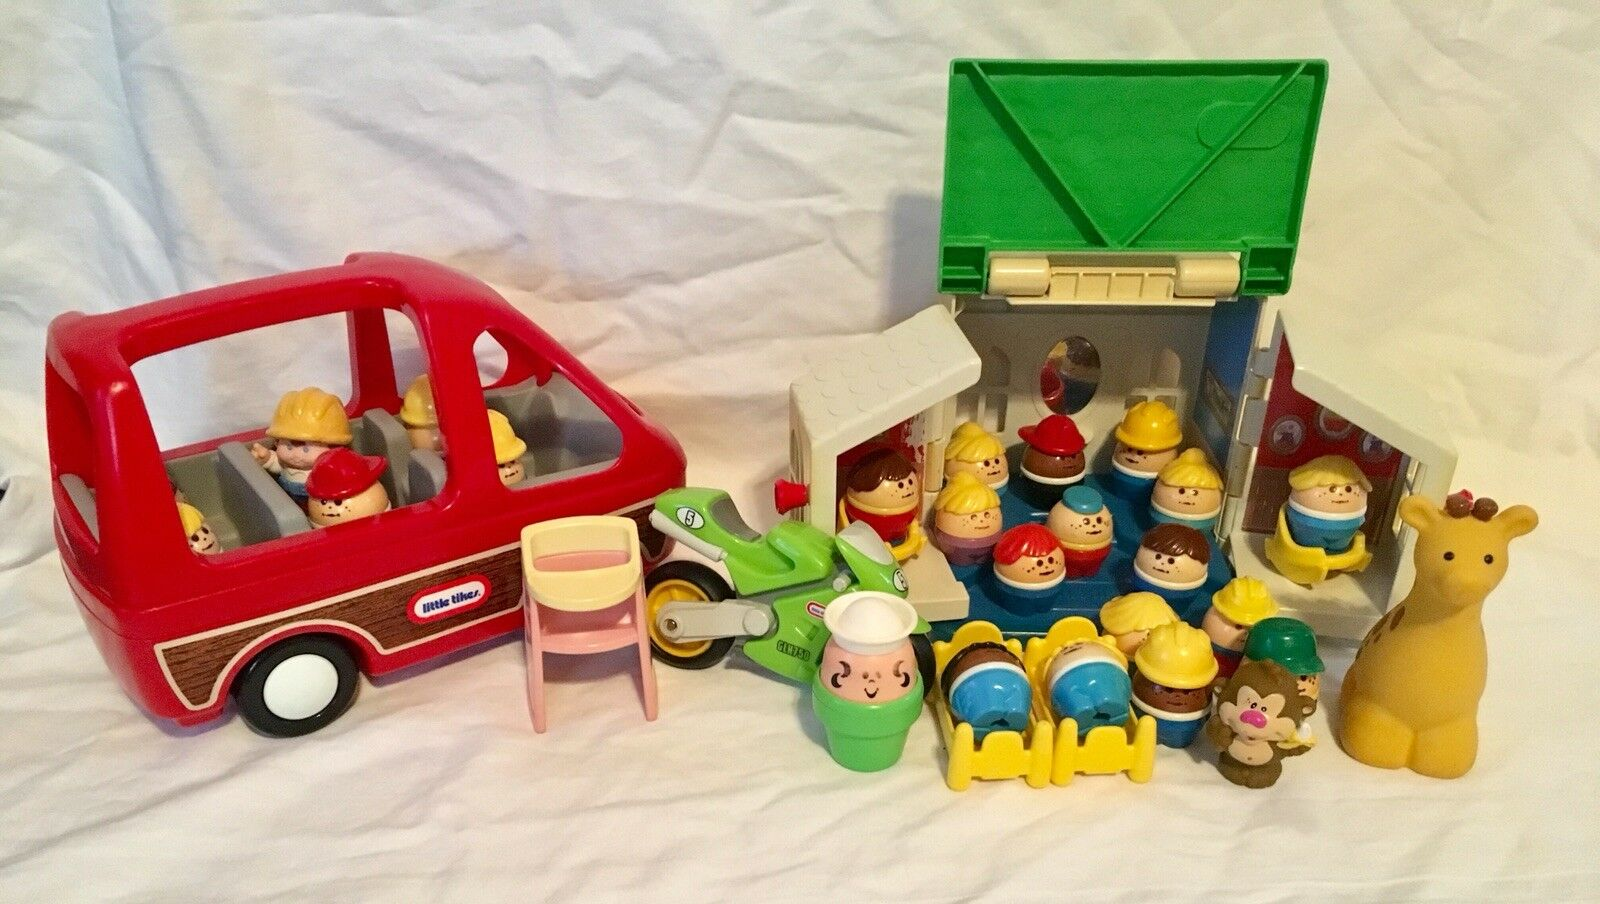 Little Tikes Doll House Toddle Figures, Furniture, House, Van, Motorcycle 40 Pcs